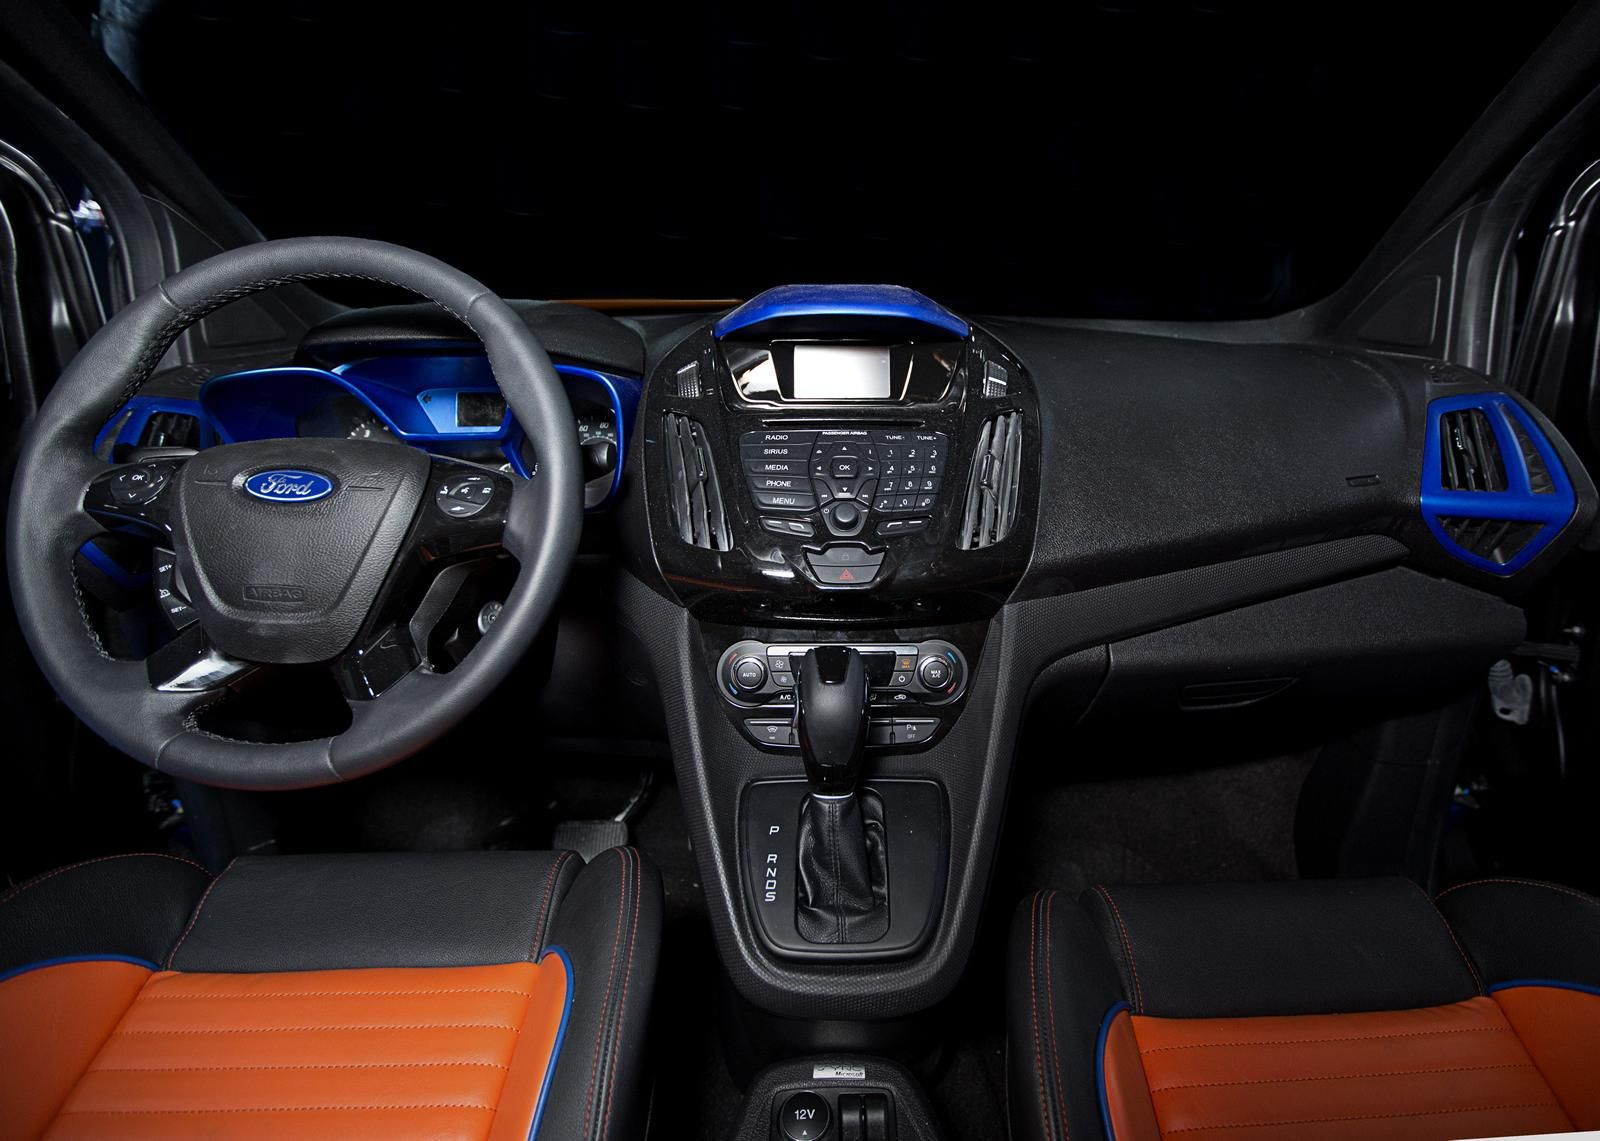 2014 ford transit connect hot wheels concept the hot wheels transit connect features an